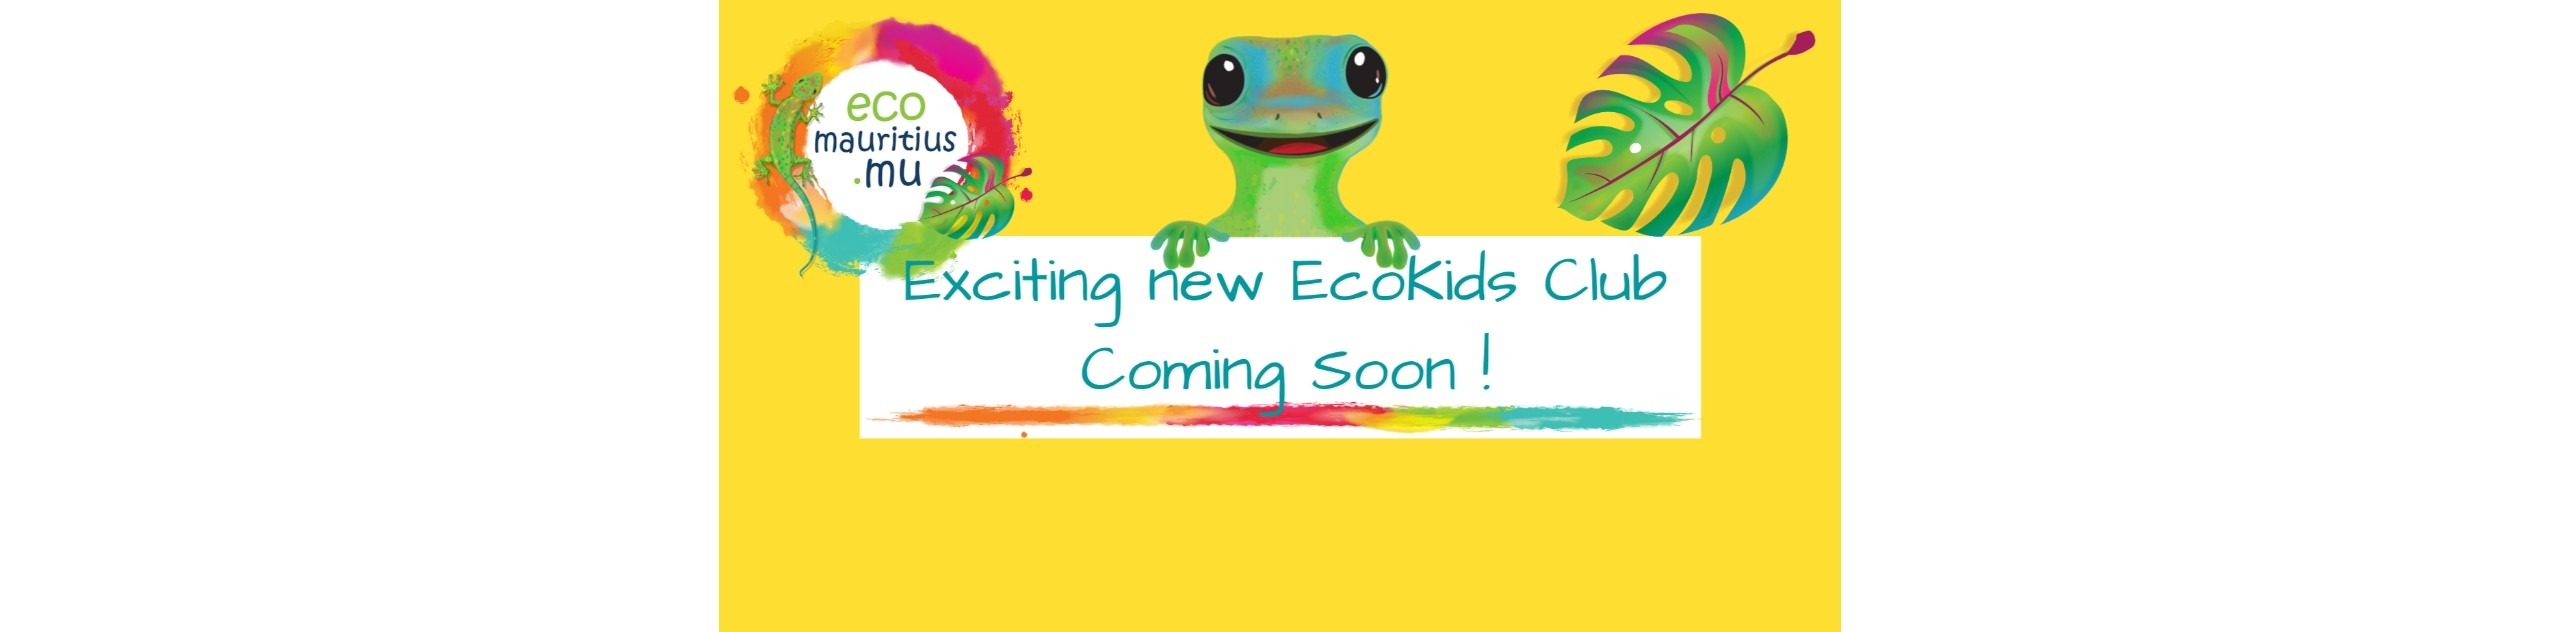 Exciting new EcoKids Club Coming Soon (2)